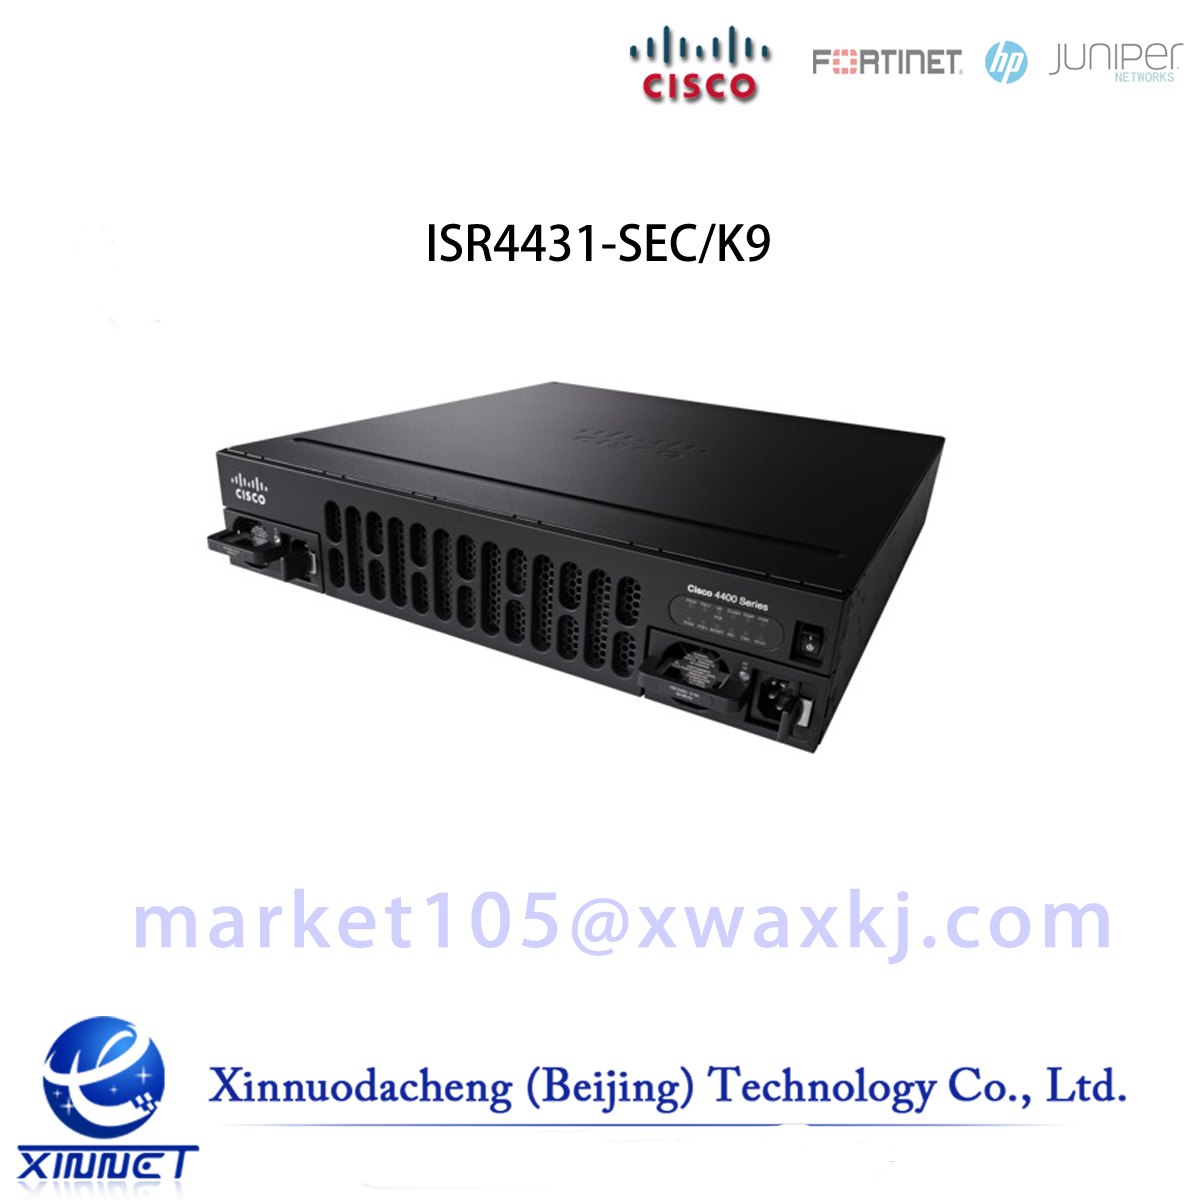 Cisco ISR 4431 Sec bundle w/SEC license ISR4431-SEC/K9